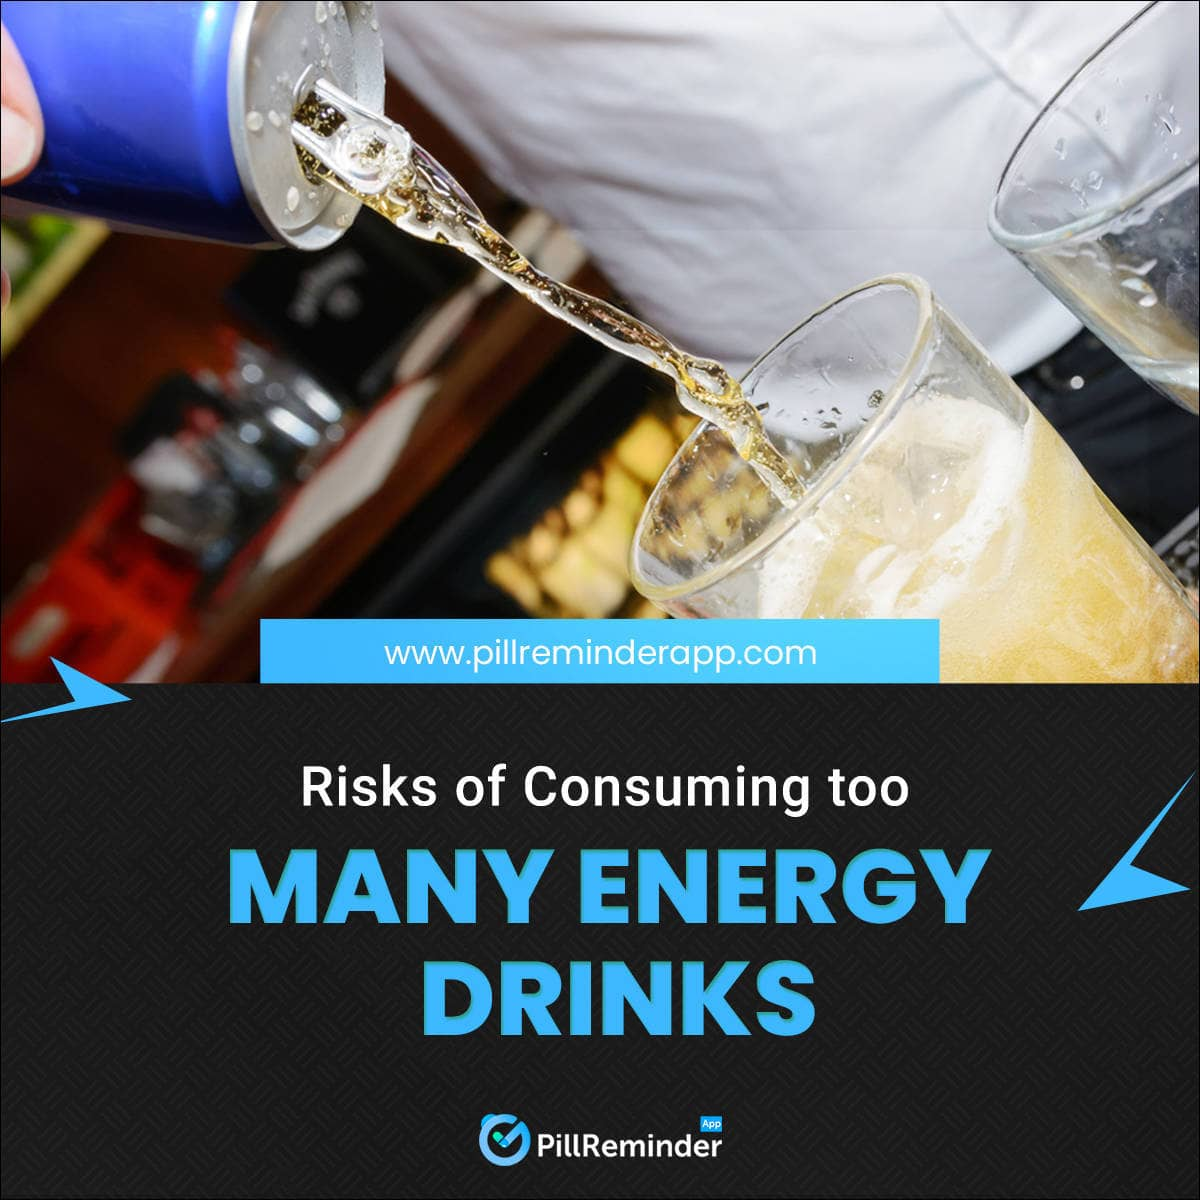 Risks of Consuming Too Many Energy Drinks